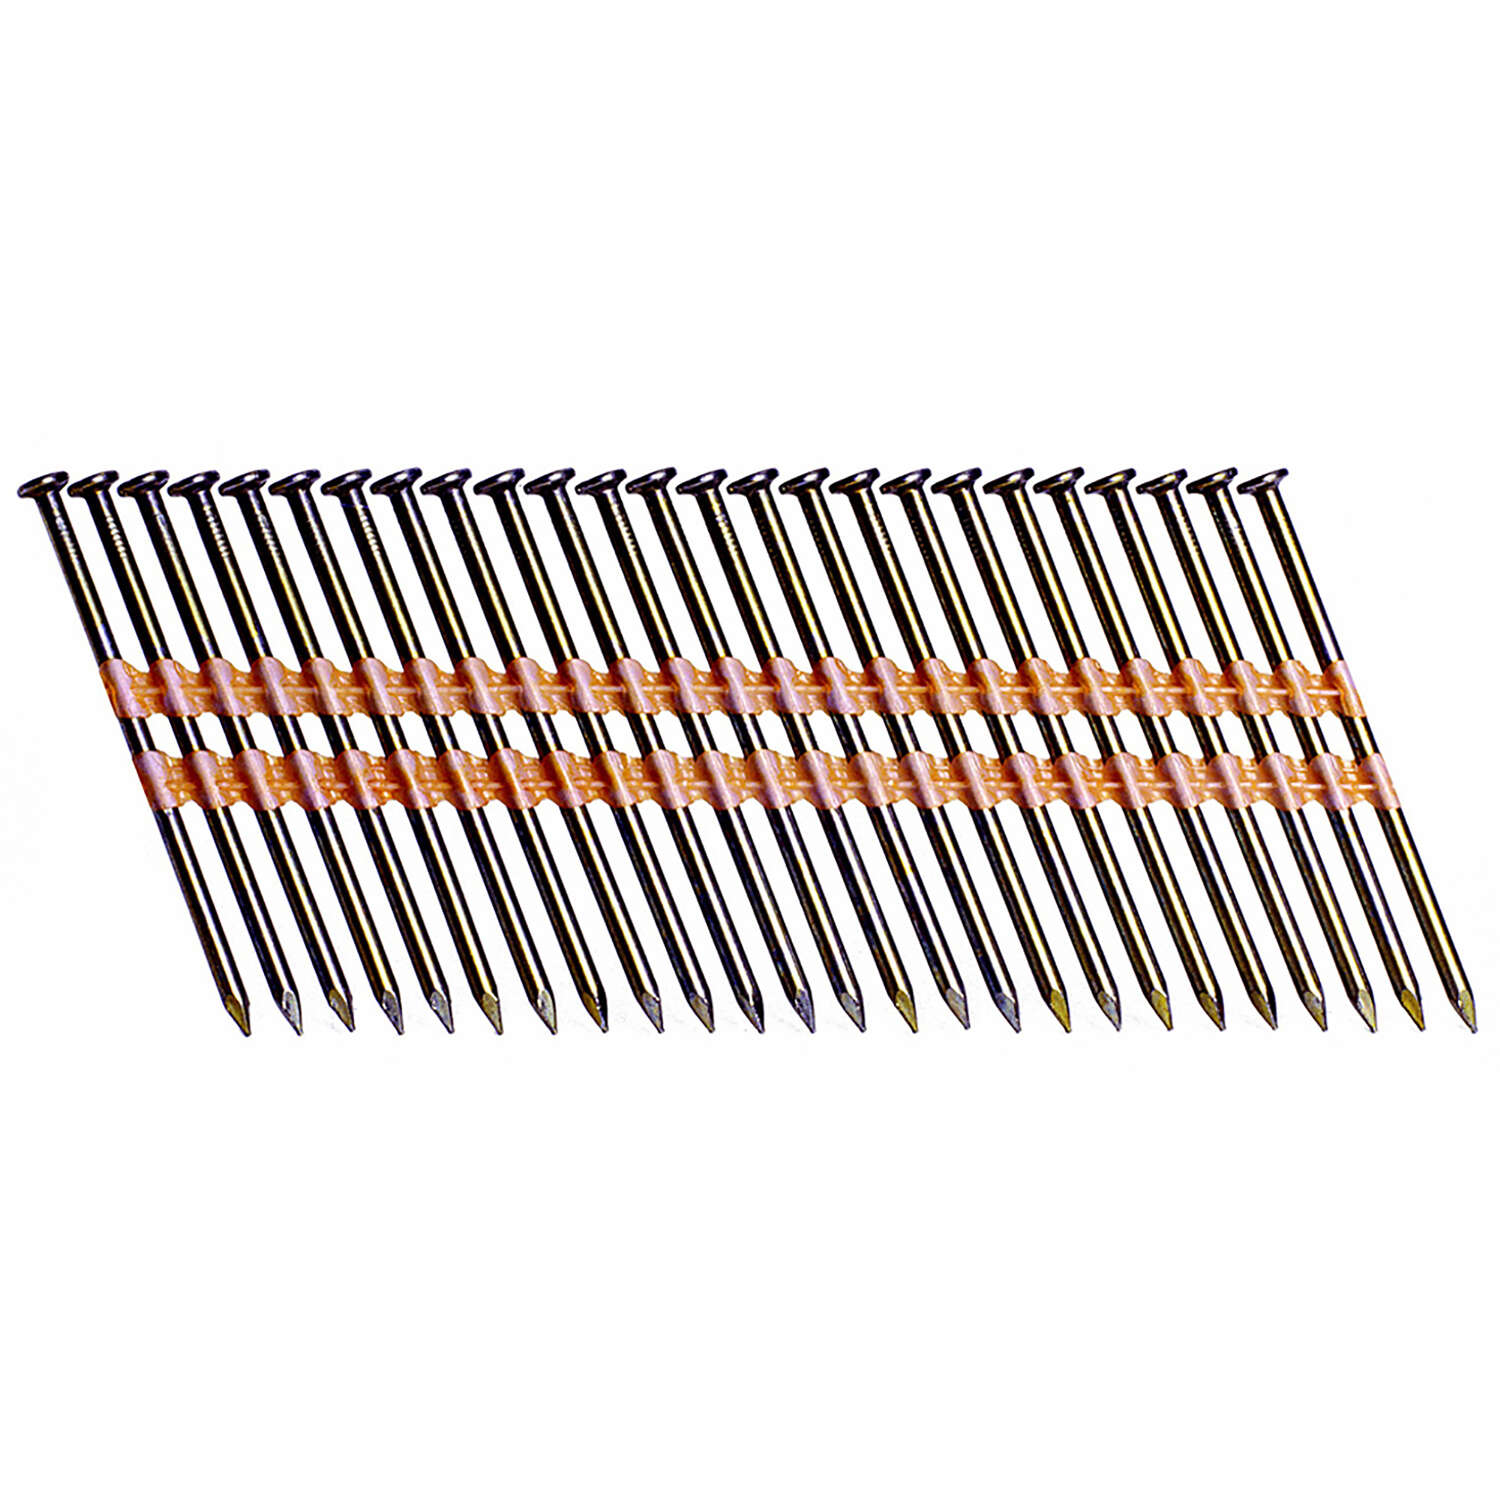 Grip-Rite  2-3/8 in. Angled Strip  Framing Nails  21 deg. Smooth Shank  5000 pk